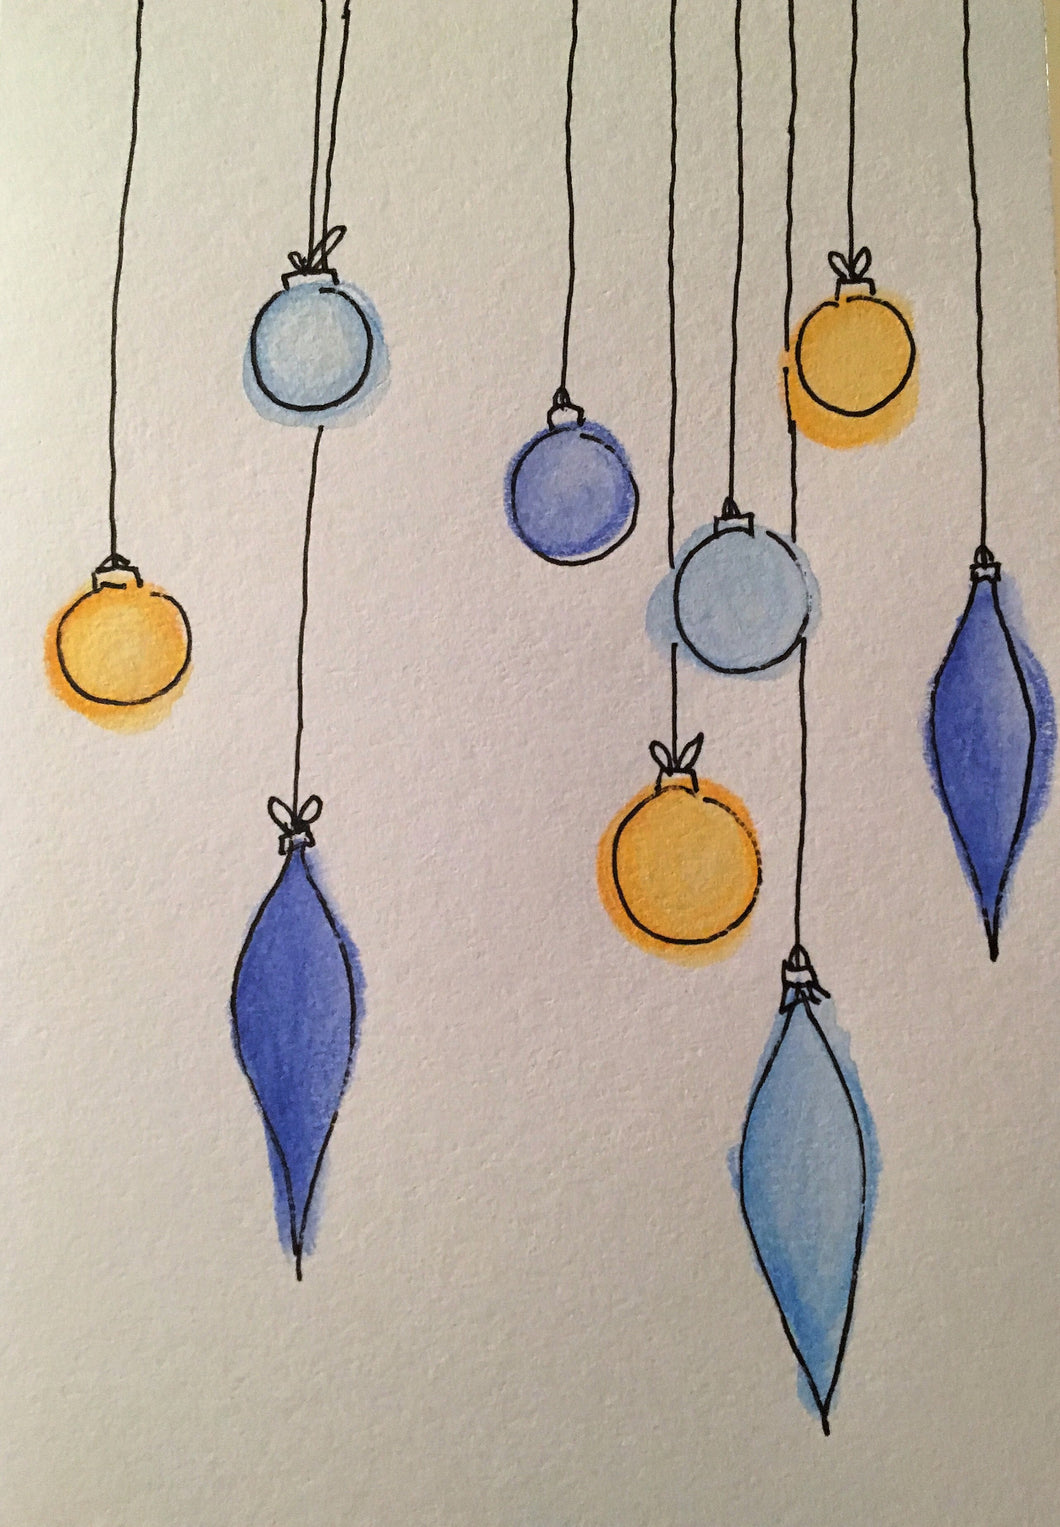 Christmas Card - Blue and Yellow Baubles - eDgE dEsiGn London